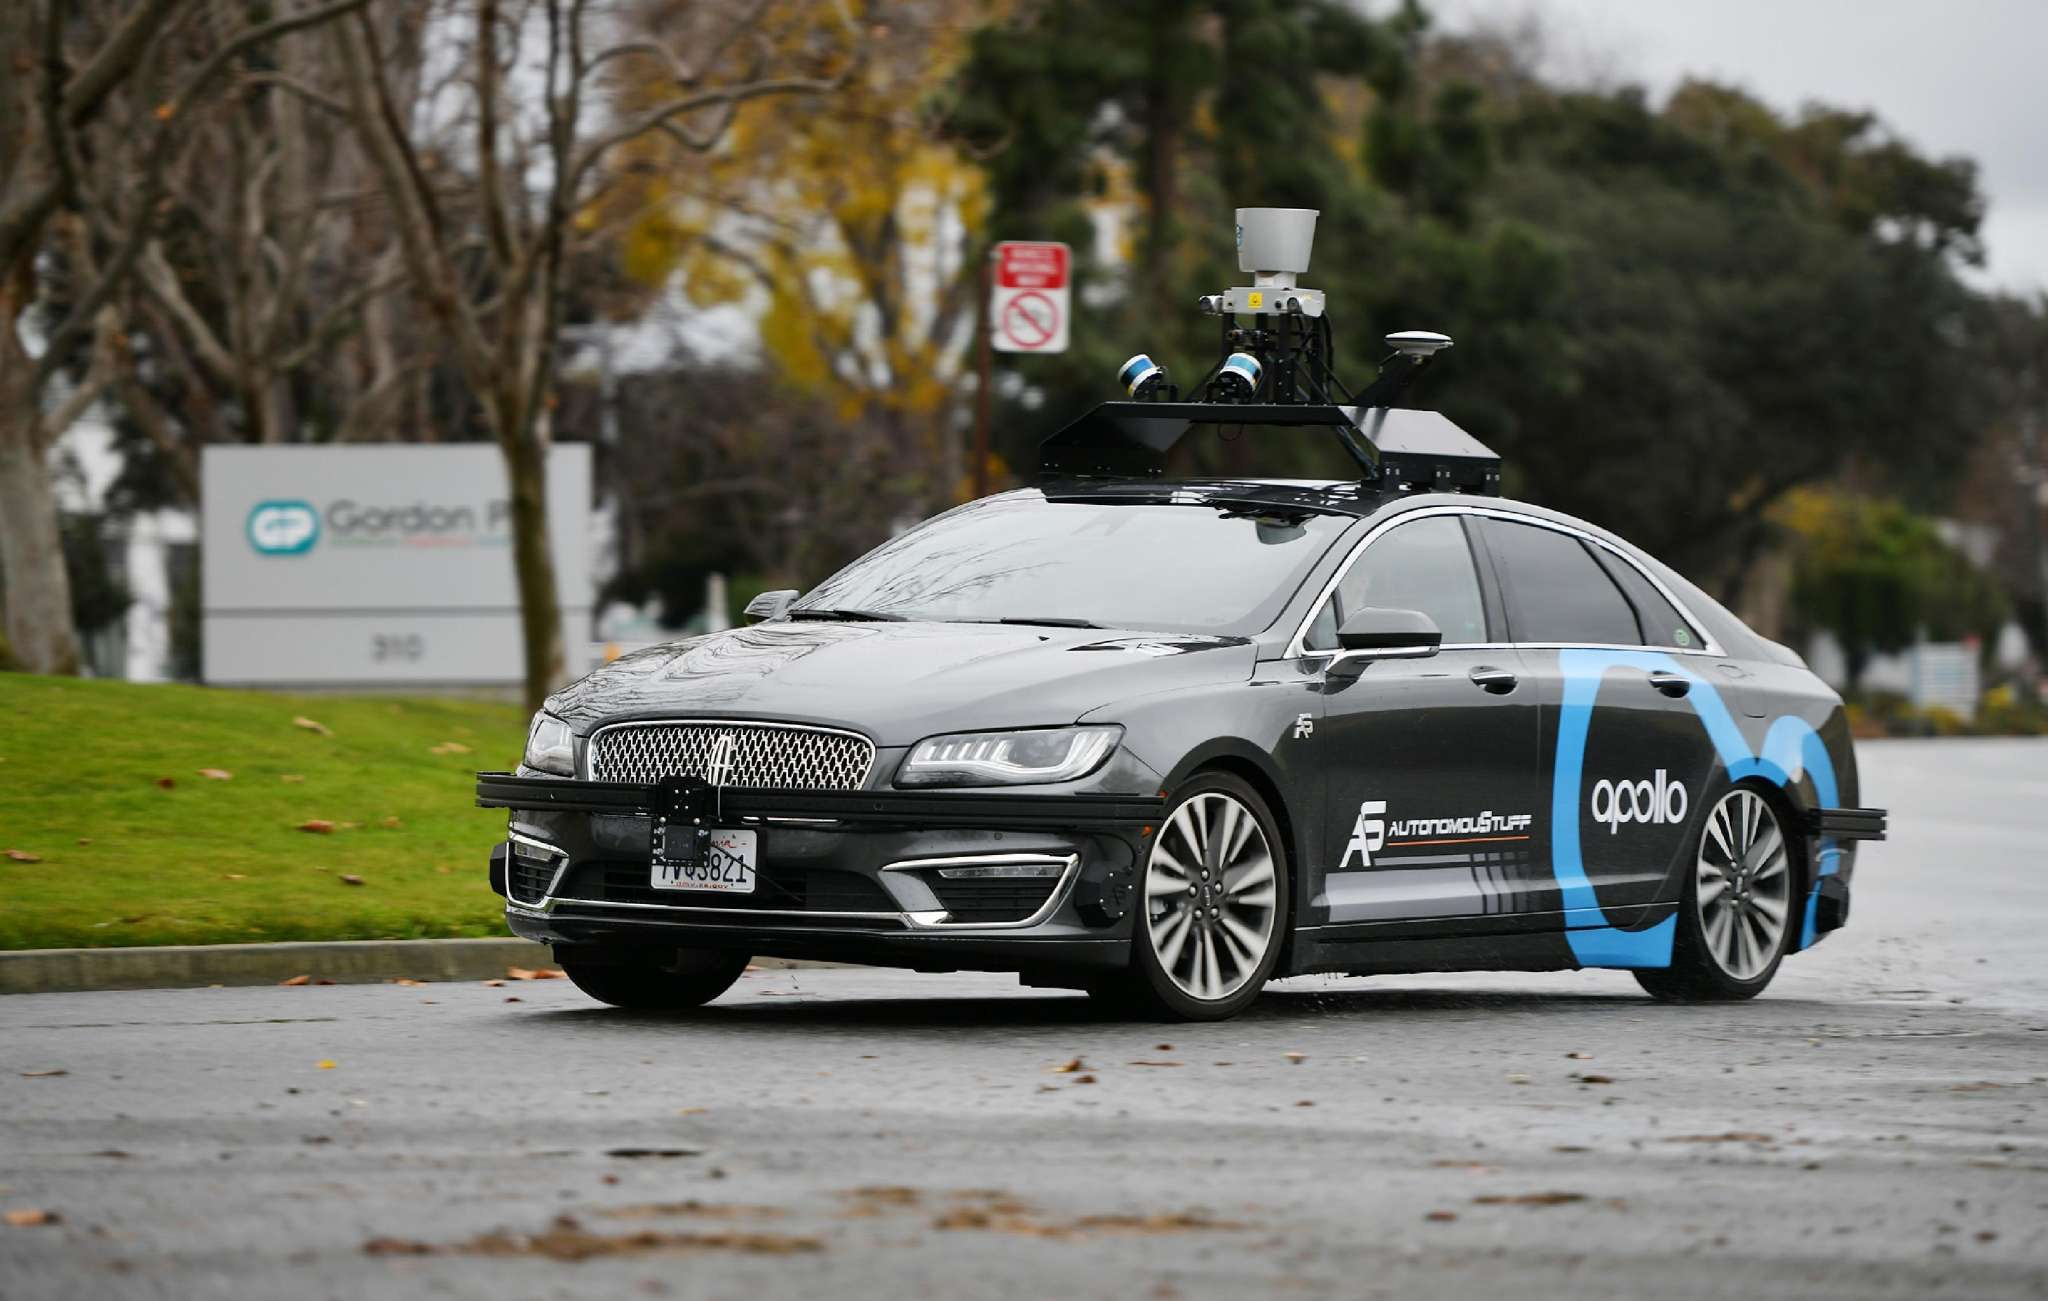 Baidu, Access Services team up for self-driving project